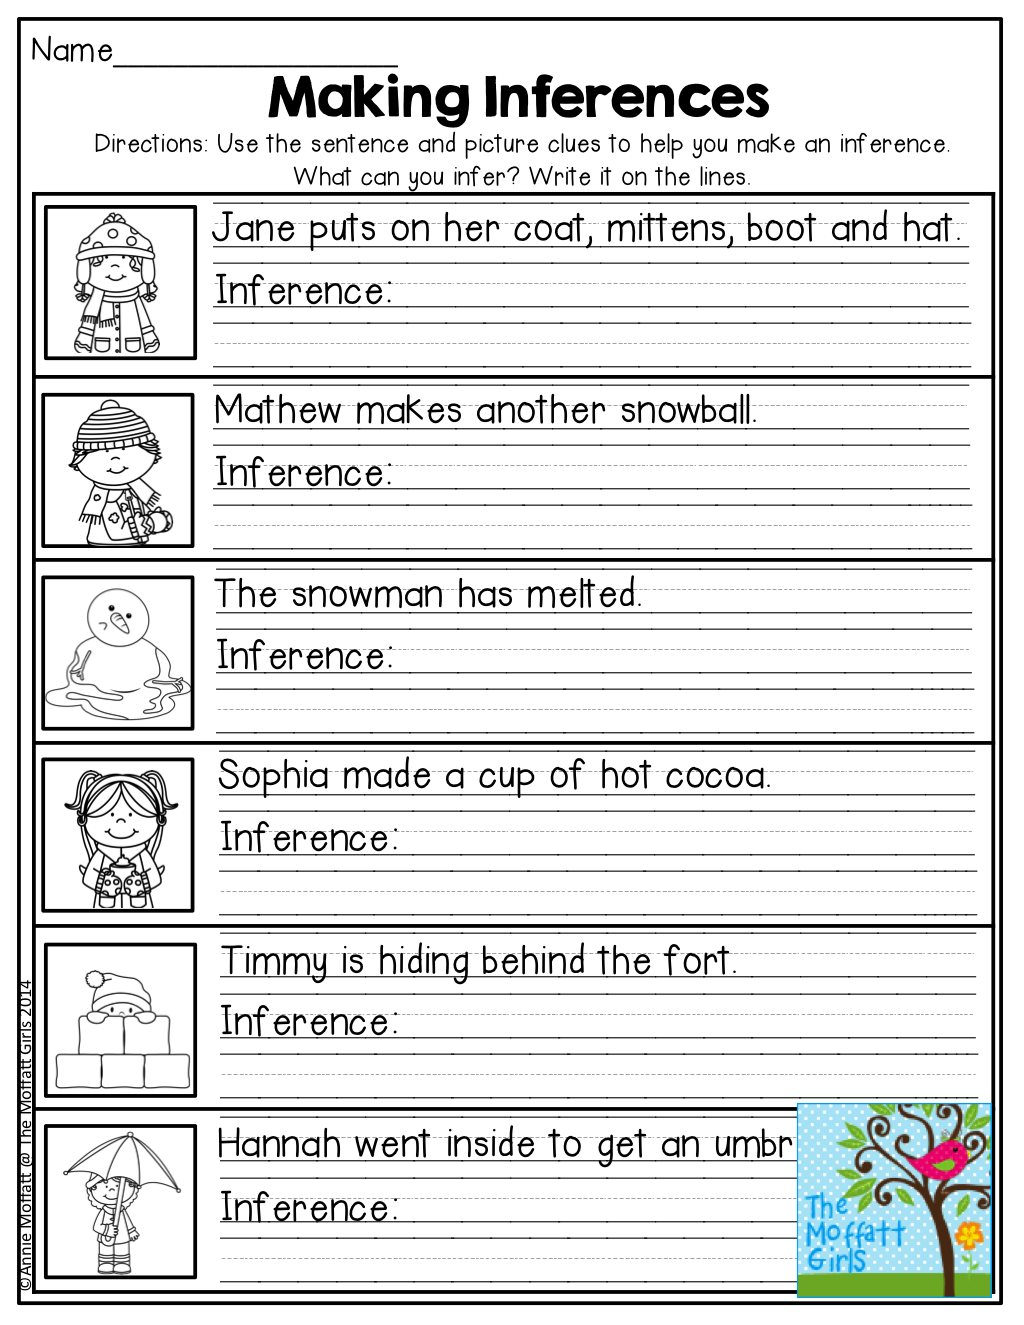 Worksheets Making Inferences Worksheets january no prep math and literacy 2nd grade making inferences tons of great printables for grade